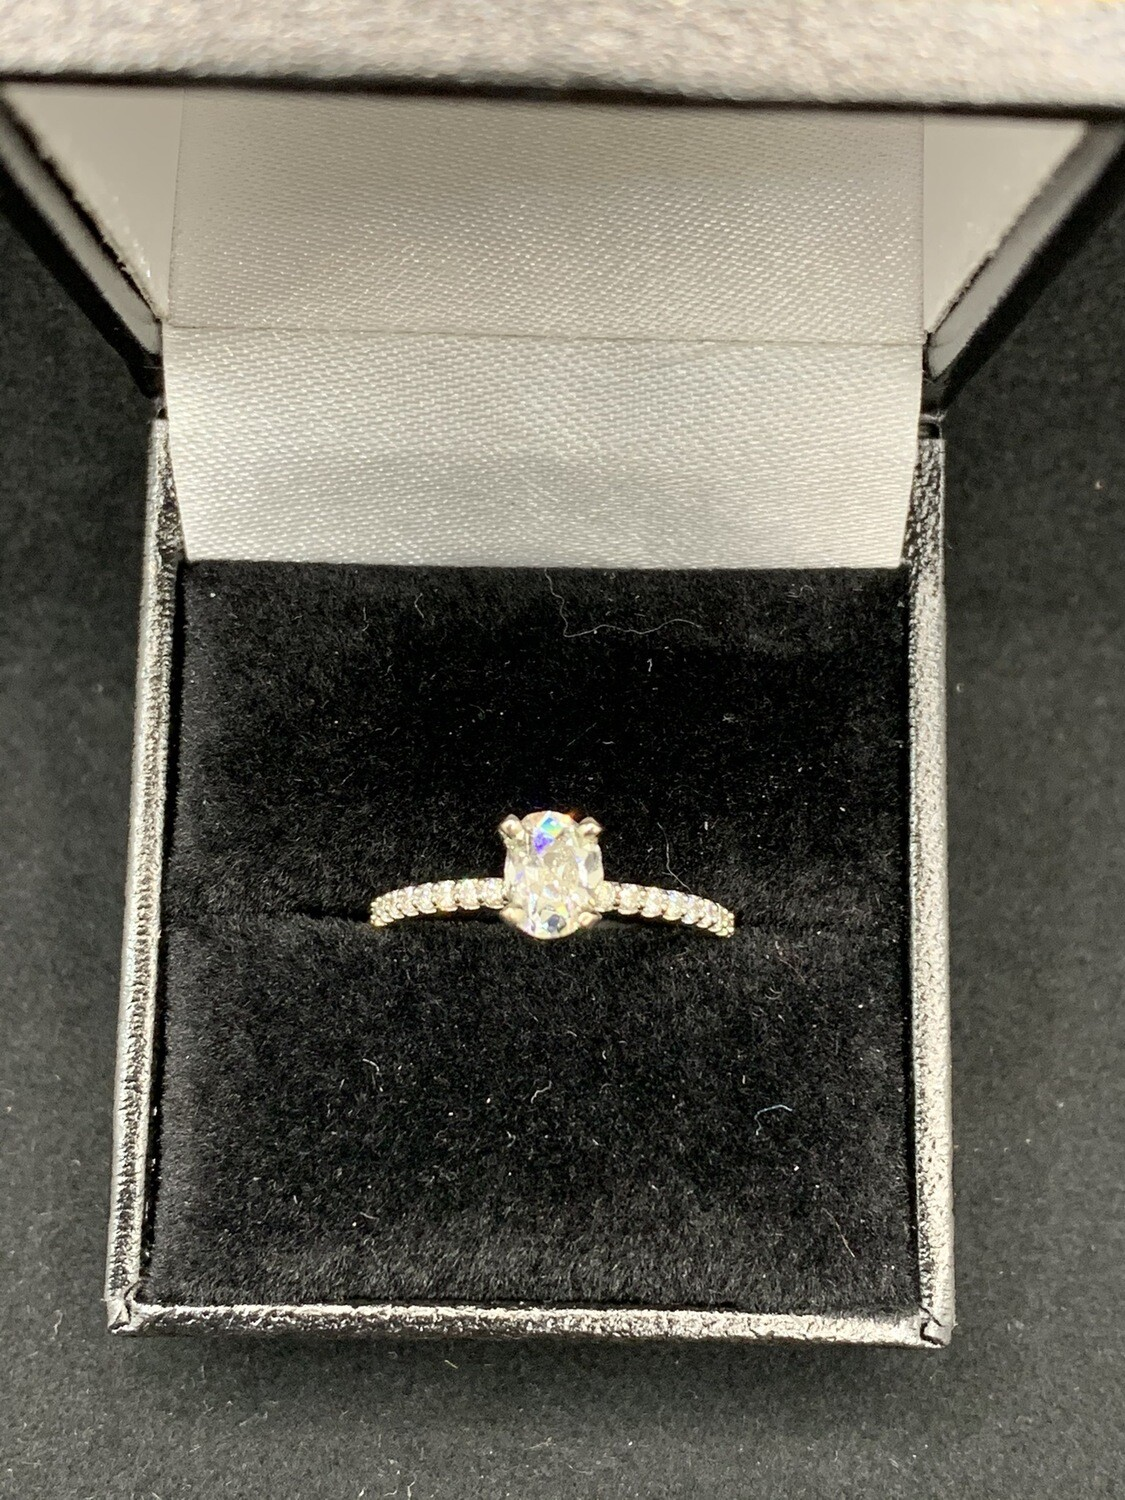 Stunning Si2 G 69 Pt Oval Cut Diamond Cathedral Mount With 25 Pt Diamond Accent Sides Engagement Ring